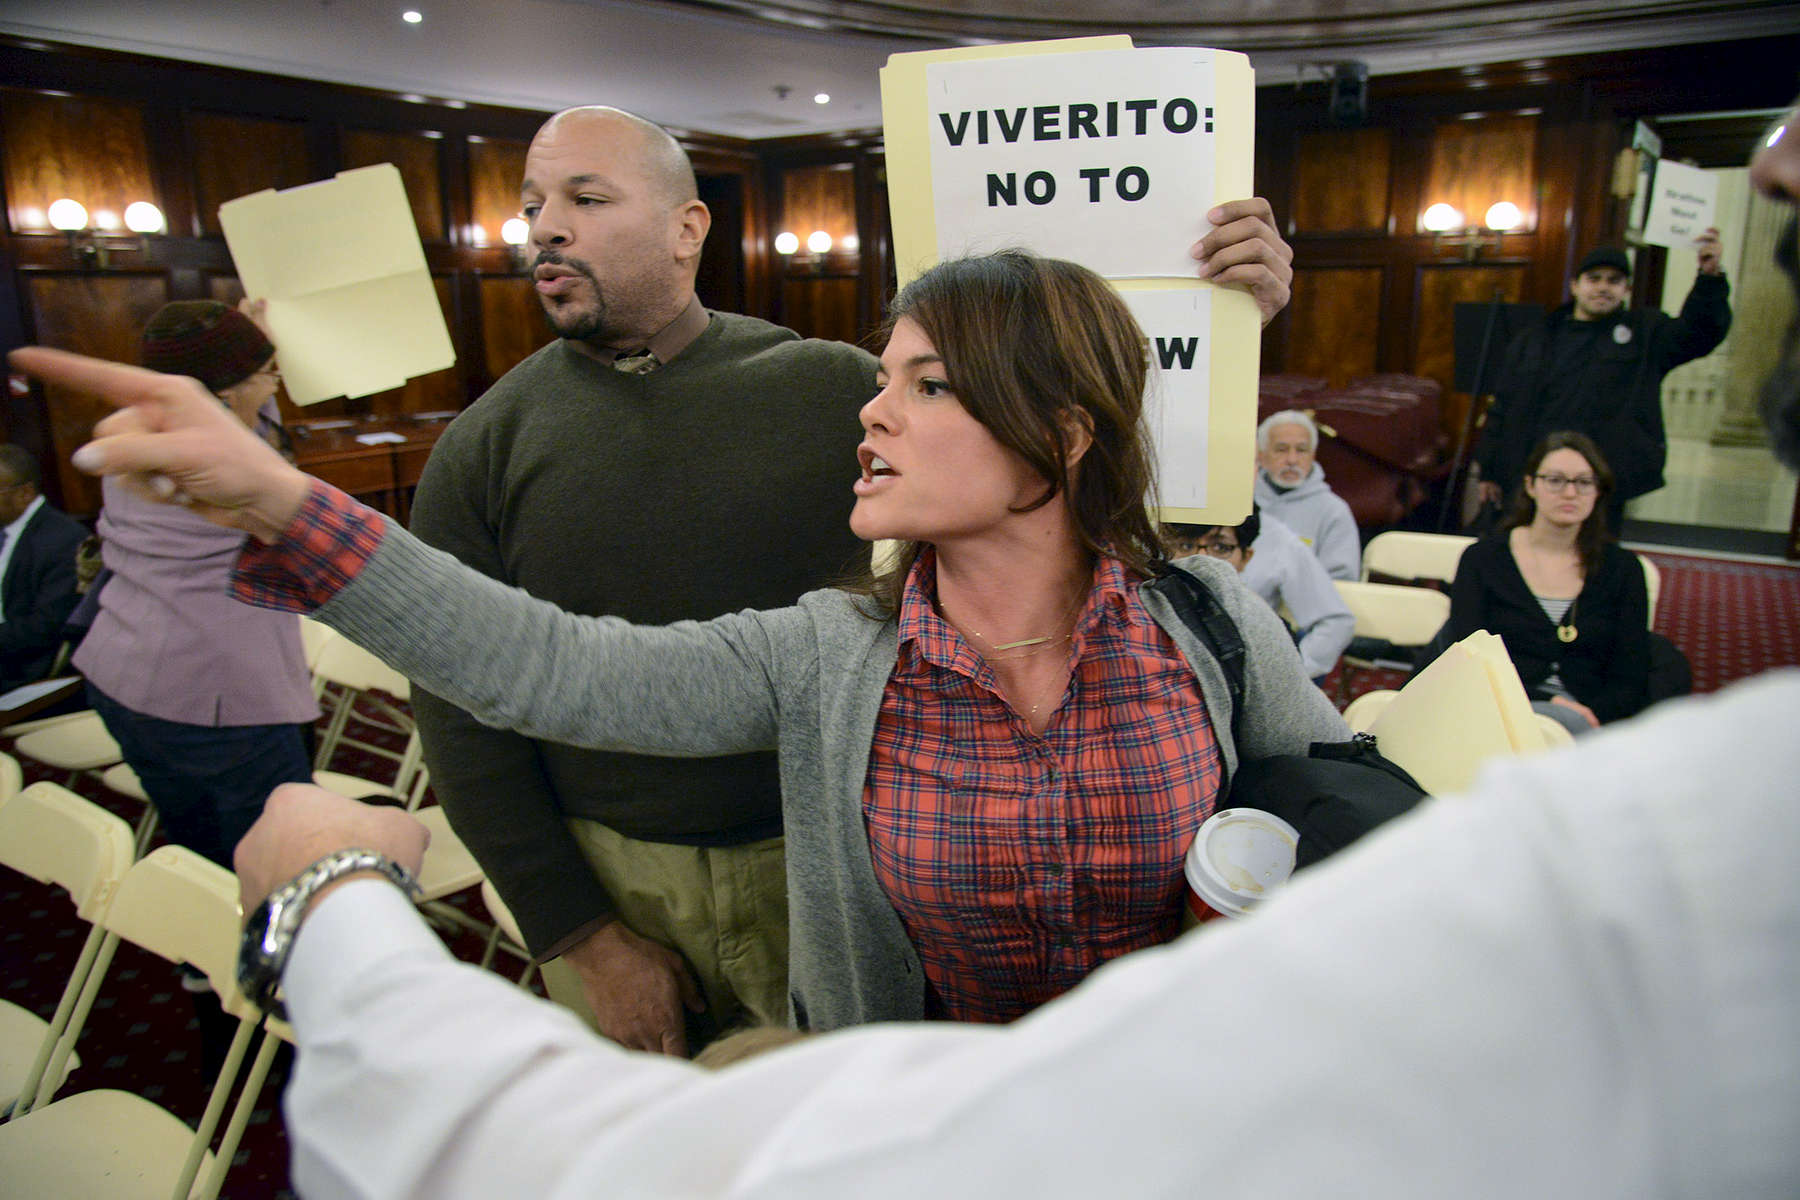 Protest at a New York City Council Meeting. NYC